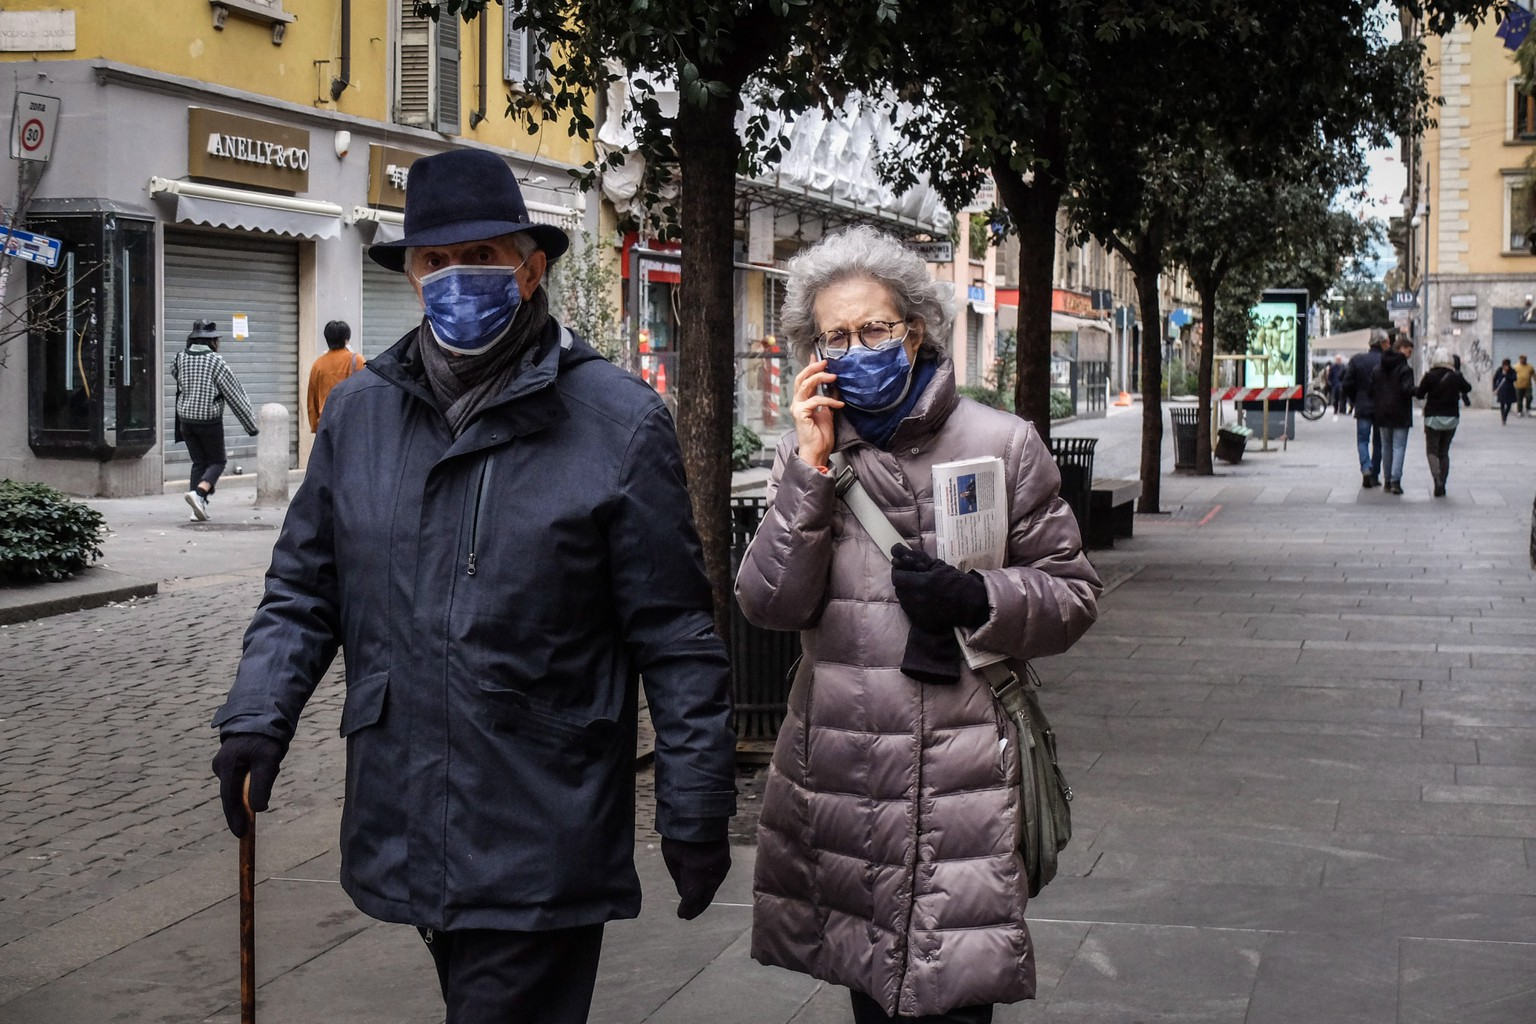 epa08249348 Two passers-by wear a protective face mask as they walk in Milan, Italy, 26 February 2020. Civil Protection Chief Angelo Borrelli said that the number of people which have died due to the COVID19 coronavirus in Italy has climbed to 12 while 374 have contracted the virus.  EPA/MATTEO CORNER